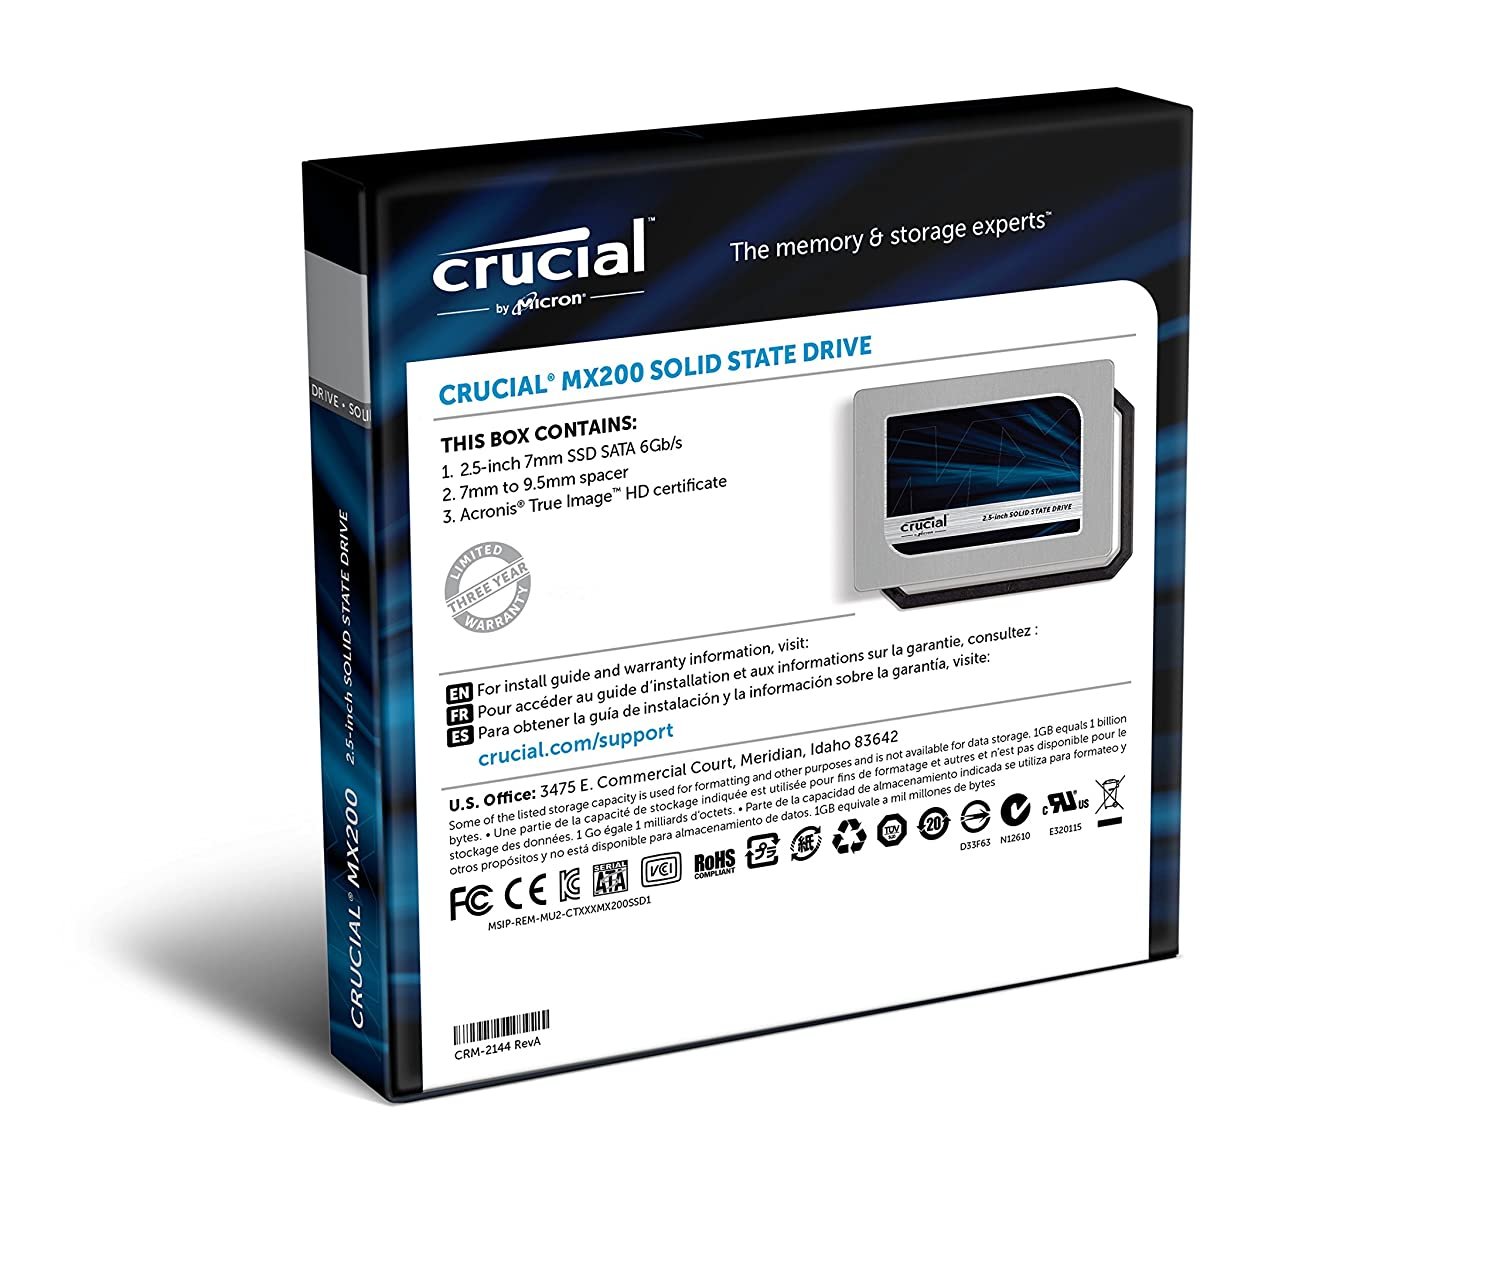 Amazon Com Old Model Crucial Mx200 500gb Sata 2 5 7mm With 9 5